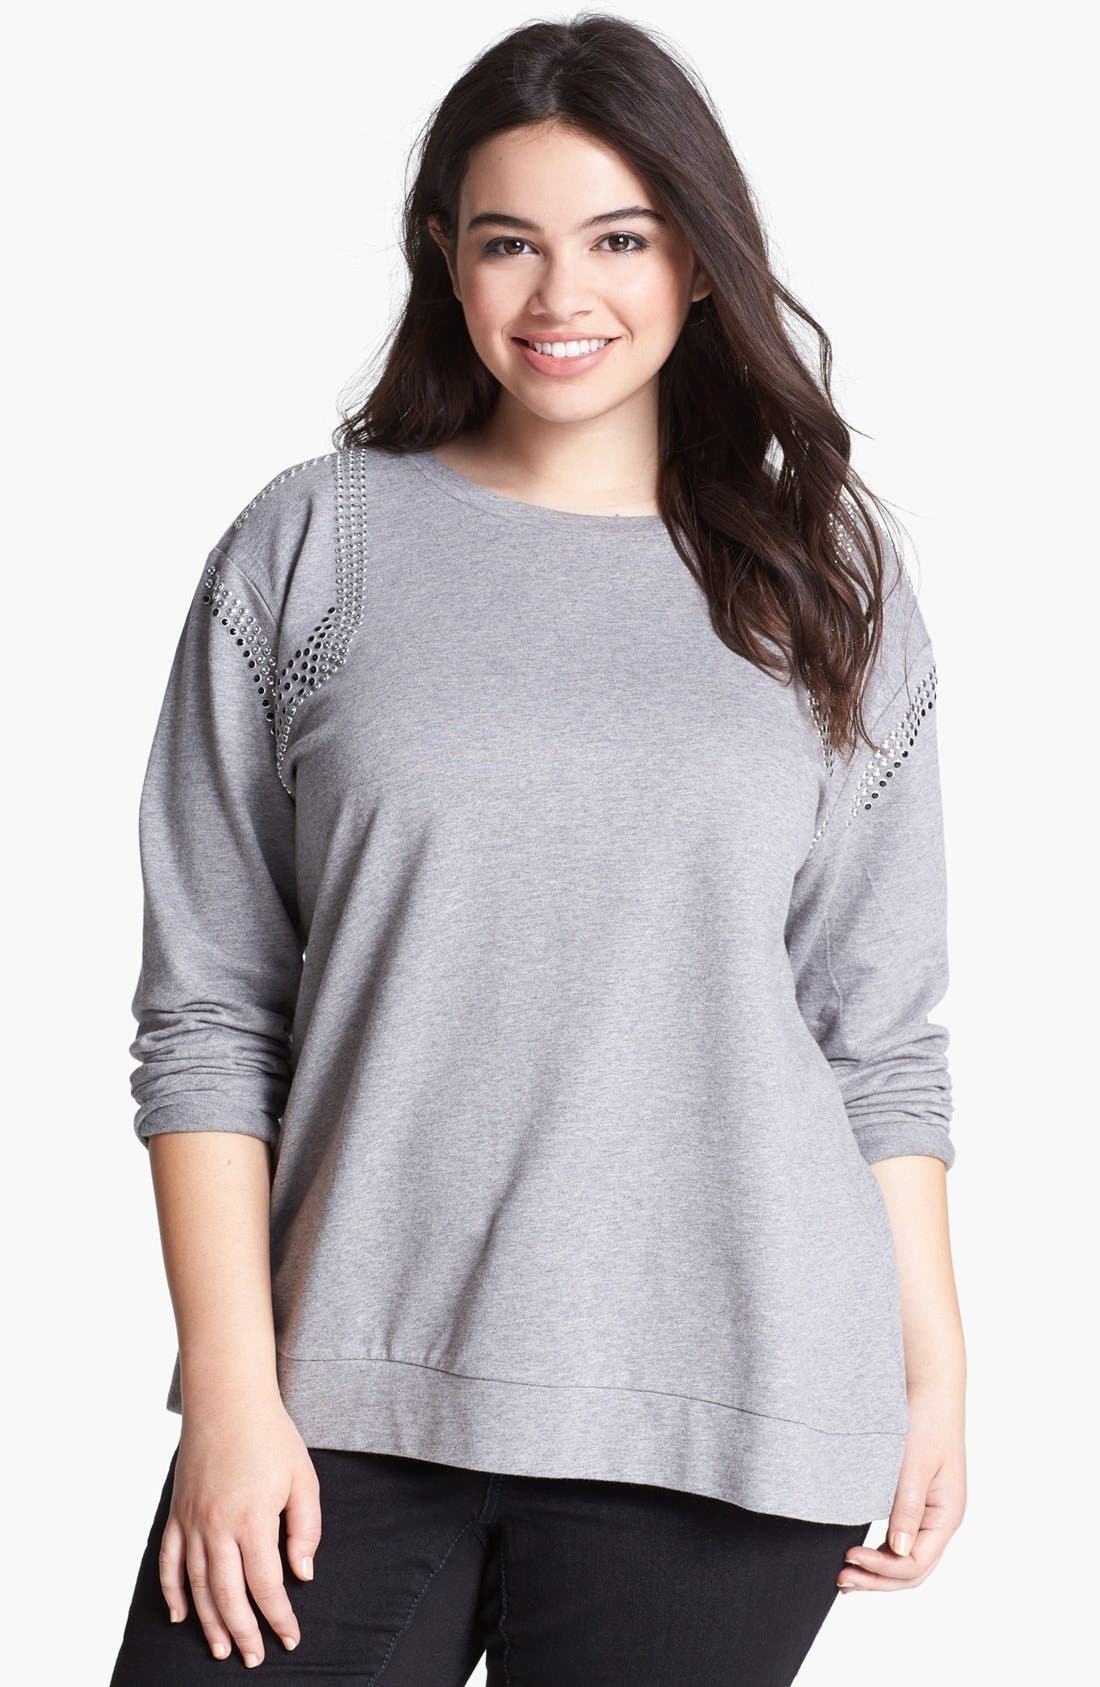 Alternate Image 1 Selected - Two by Vince Camuto Studded Sweatshirt (Plus Size)